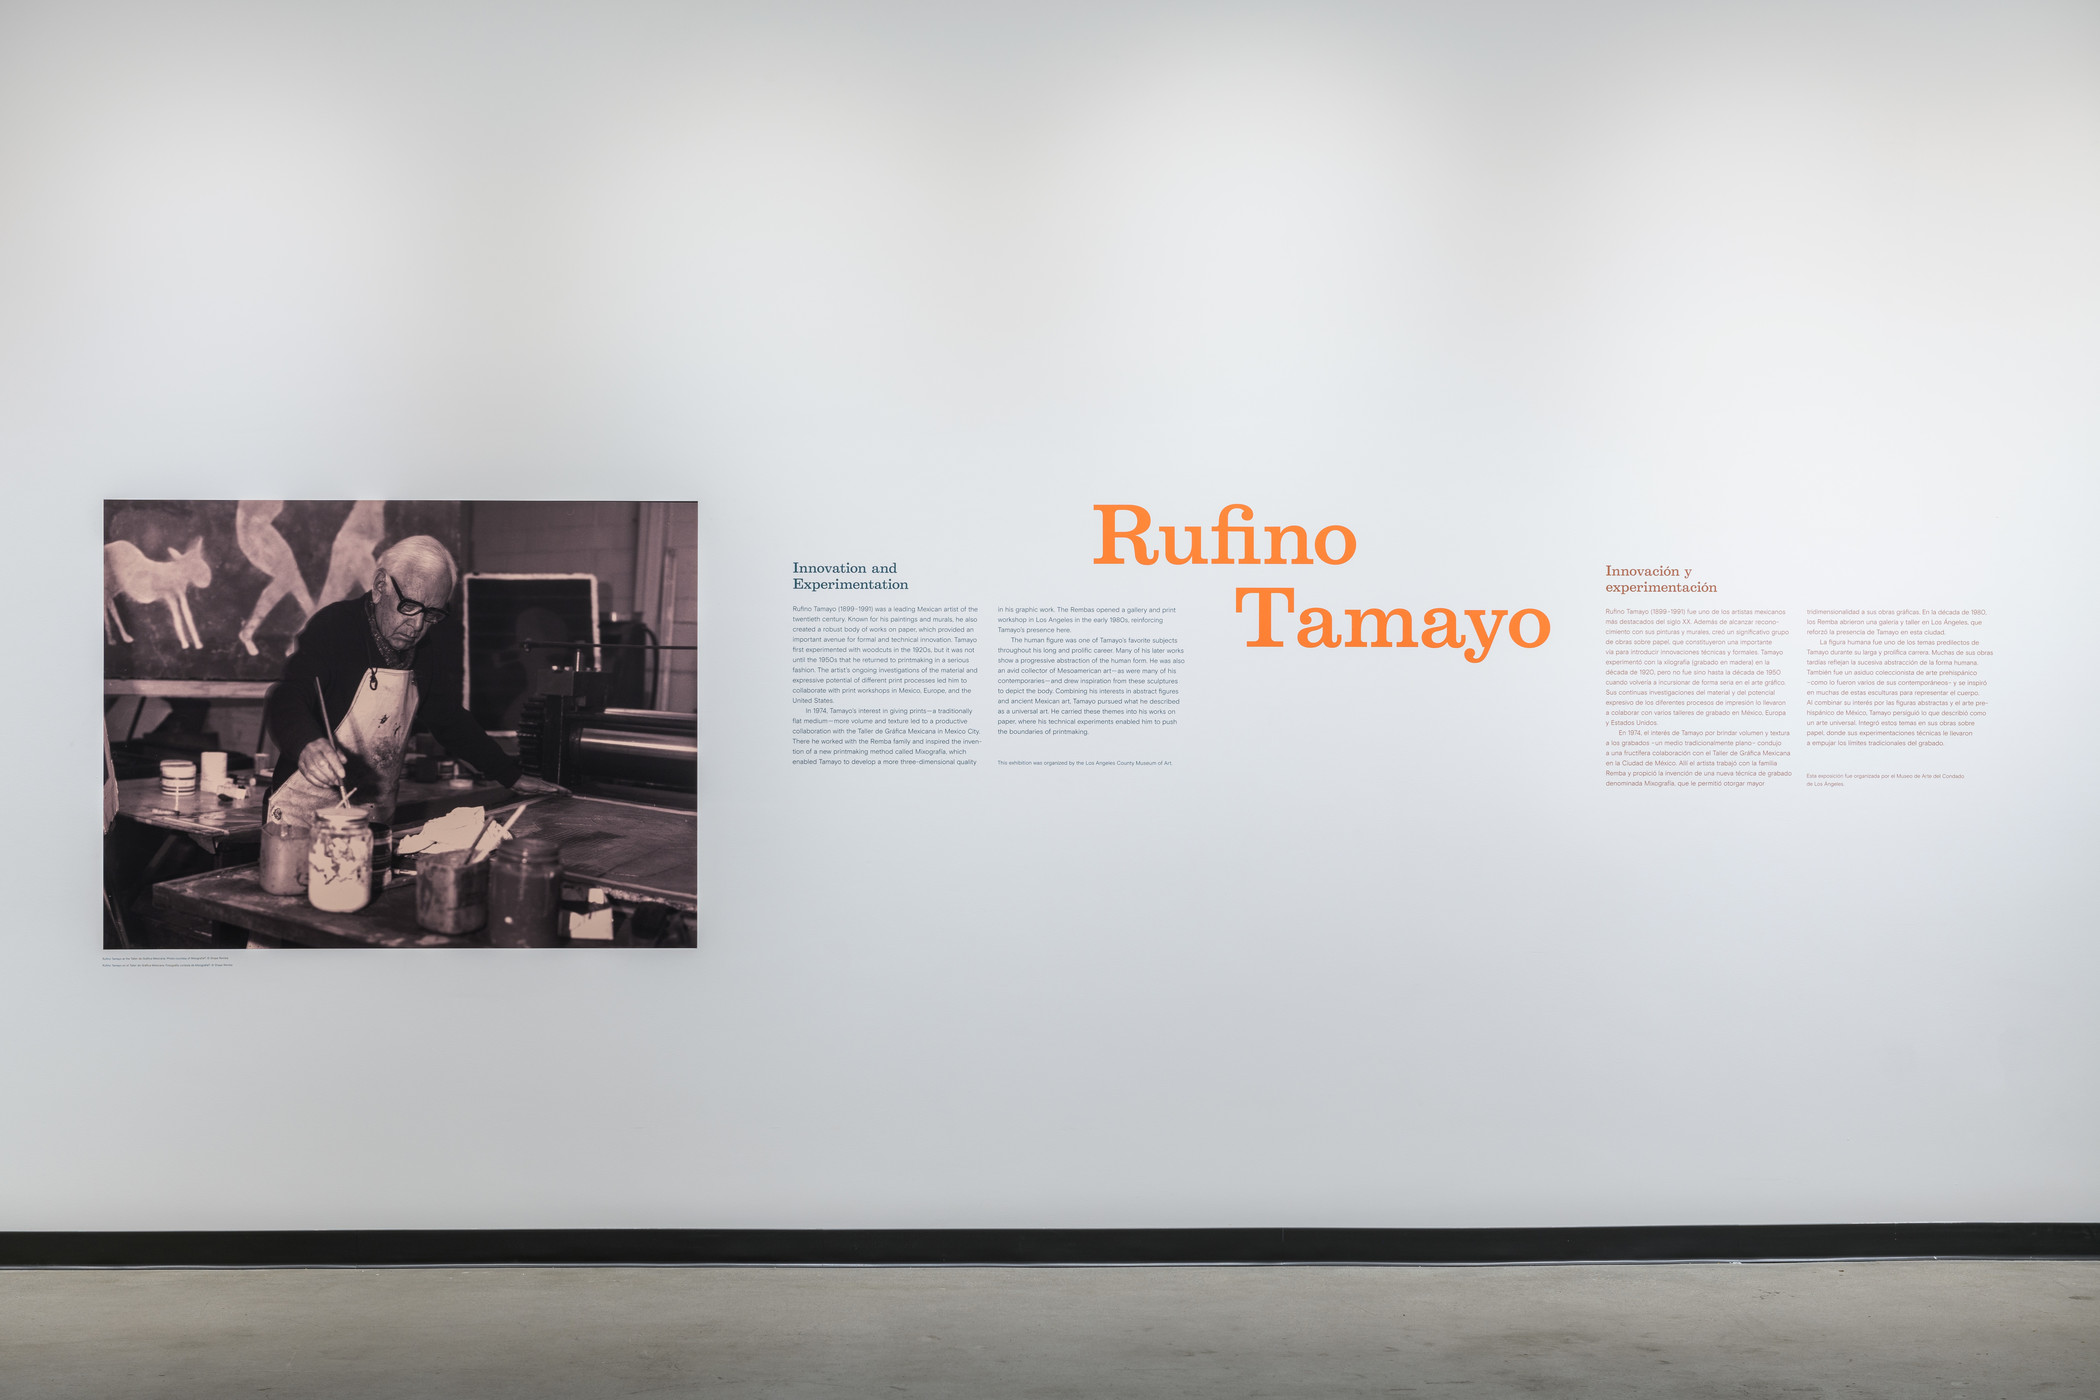 Installation photograph, Rufino Tamayo: Innovation and Experimentation, Los Angeles County Museum of Art at Charles White Elementary School Gallery, December 21, 2019–July 11, 2020, photo © 2020 Museum Associates/LACMA